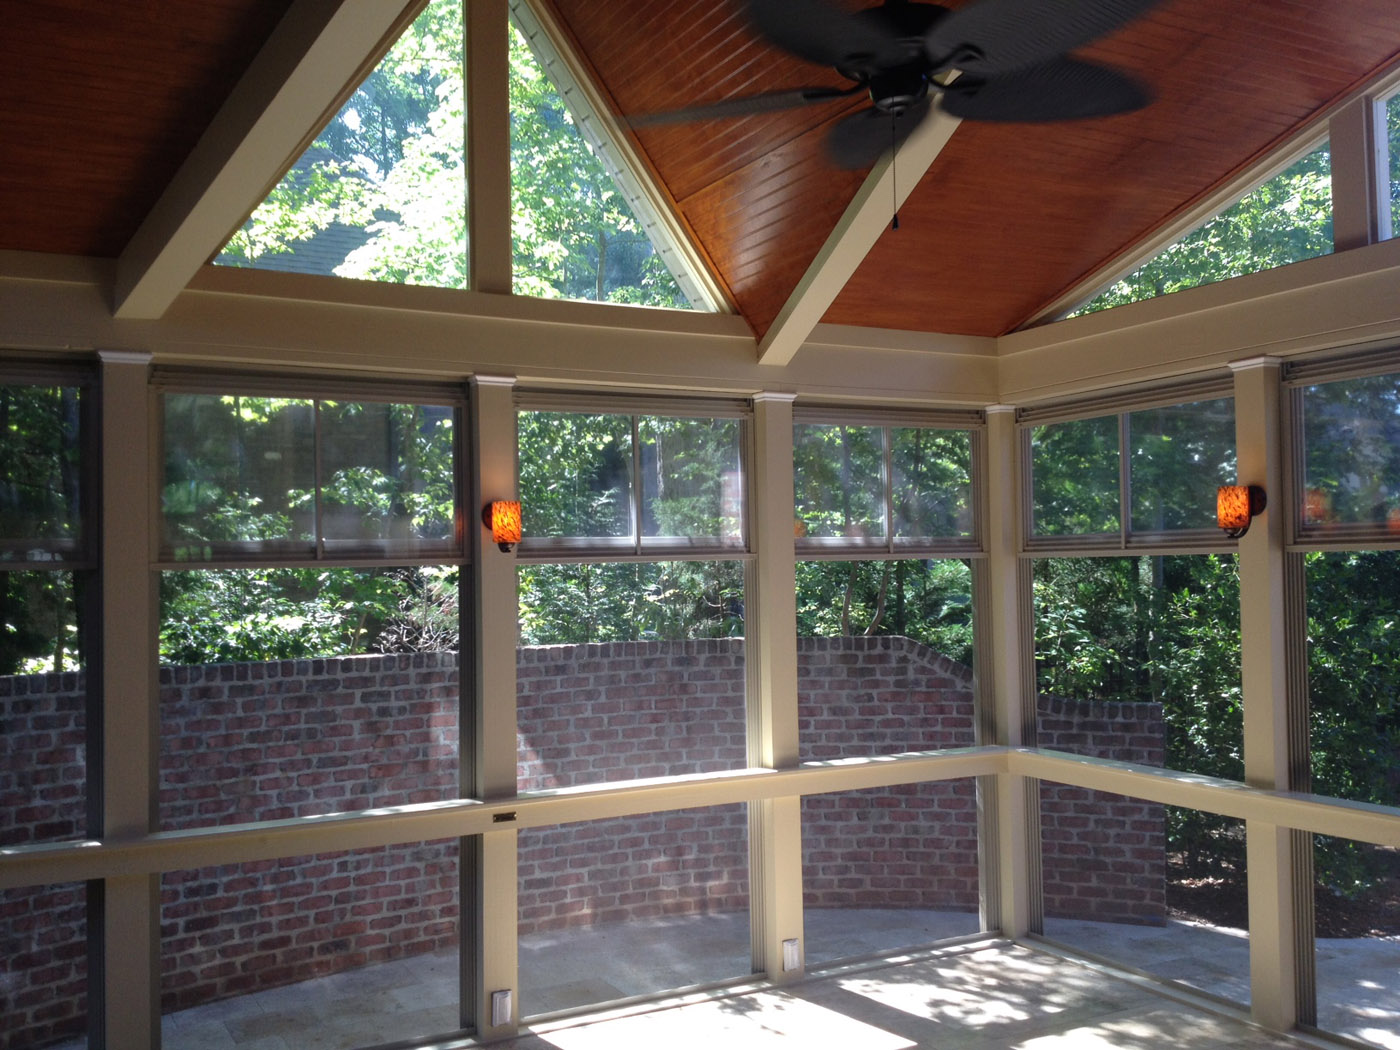 screen porch into a multiseason outdoor room or we can add eze breeze into the initial design on any new screened porch project you have in mind